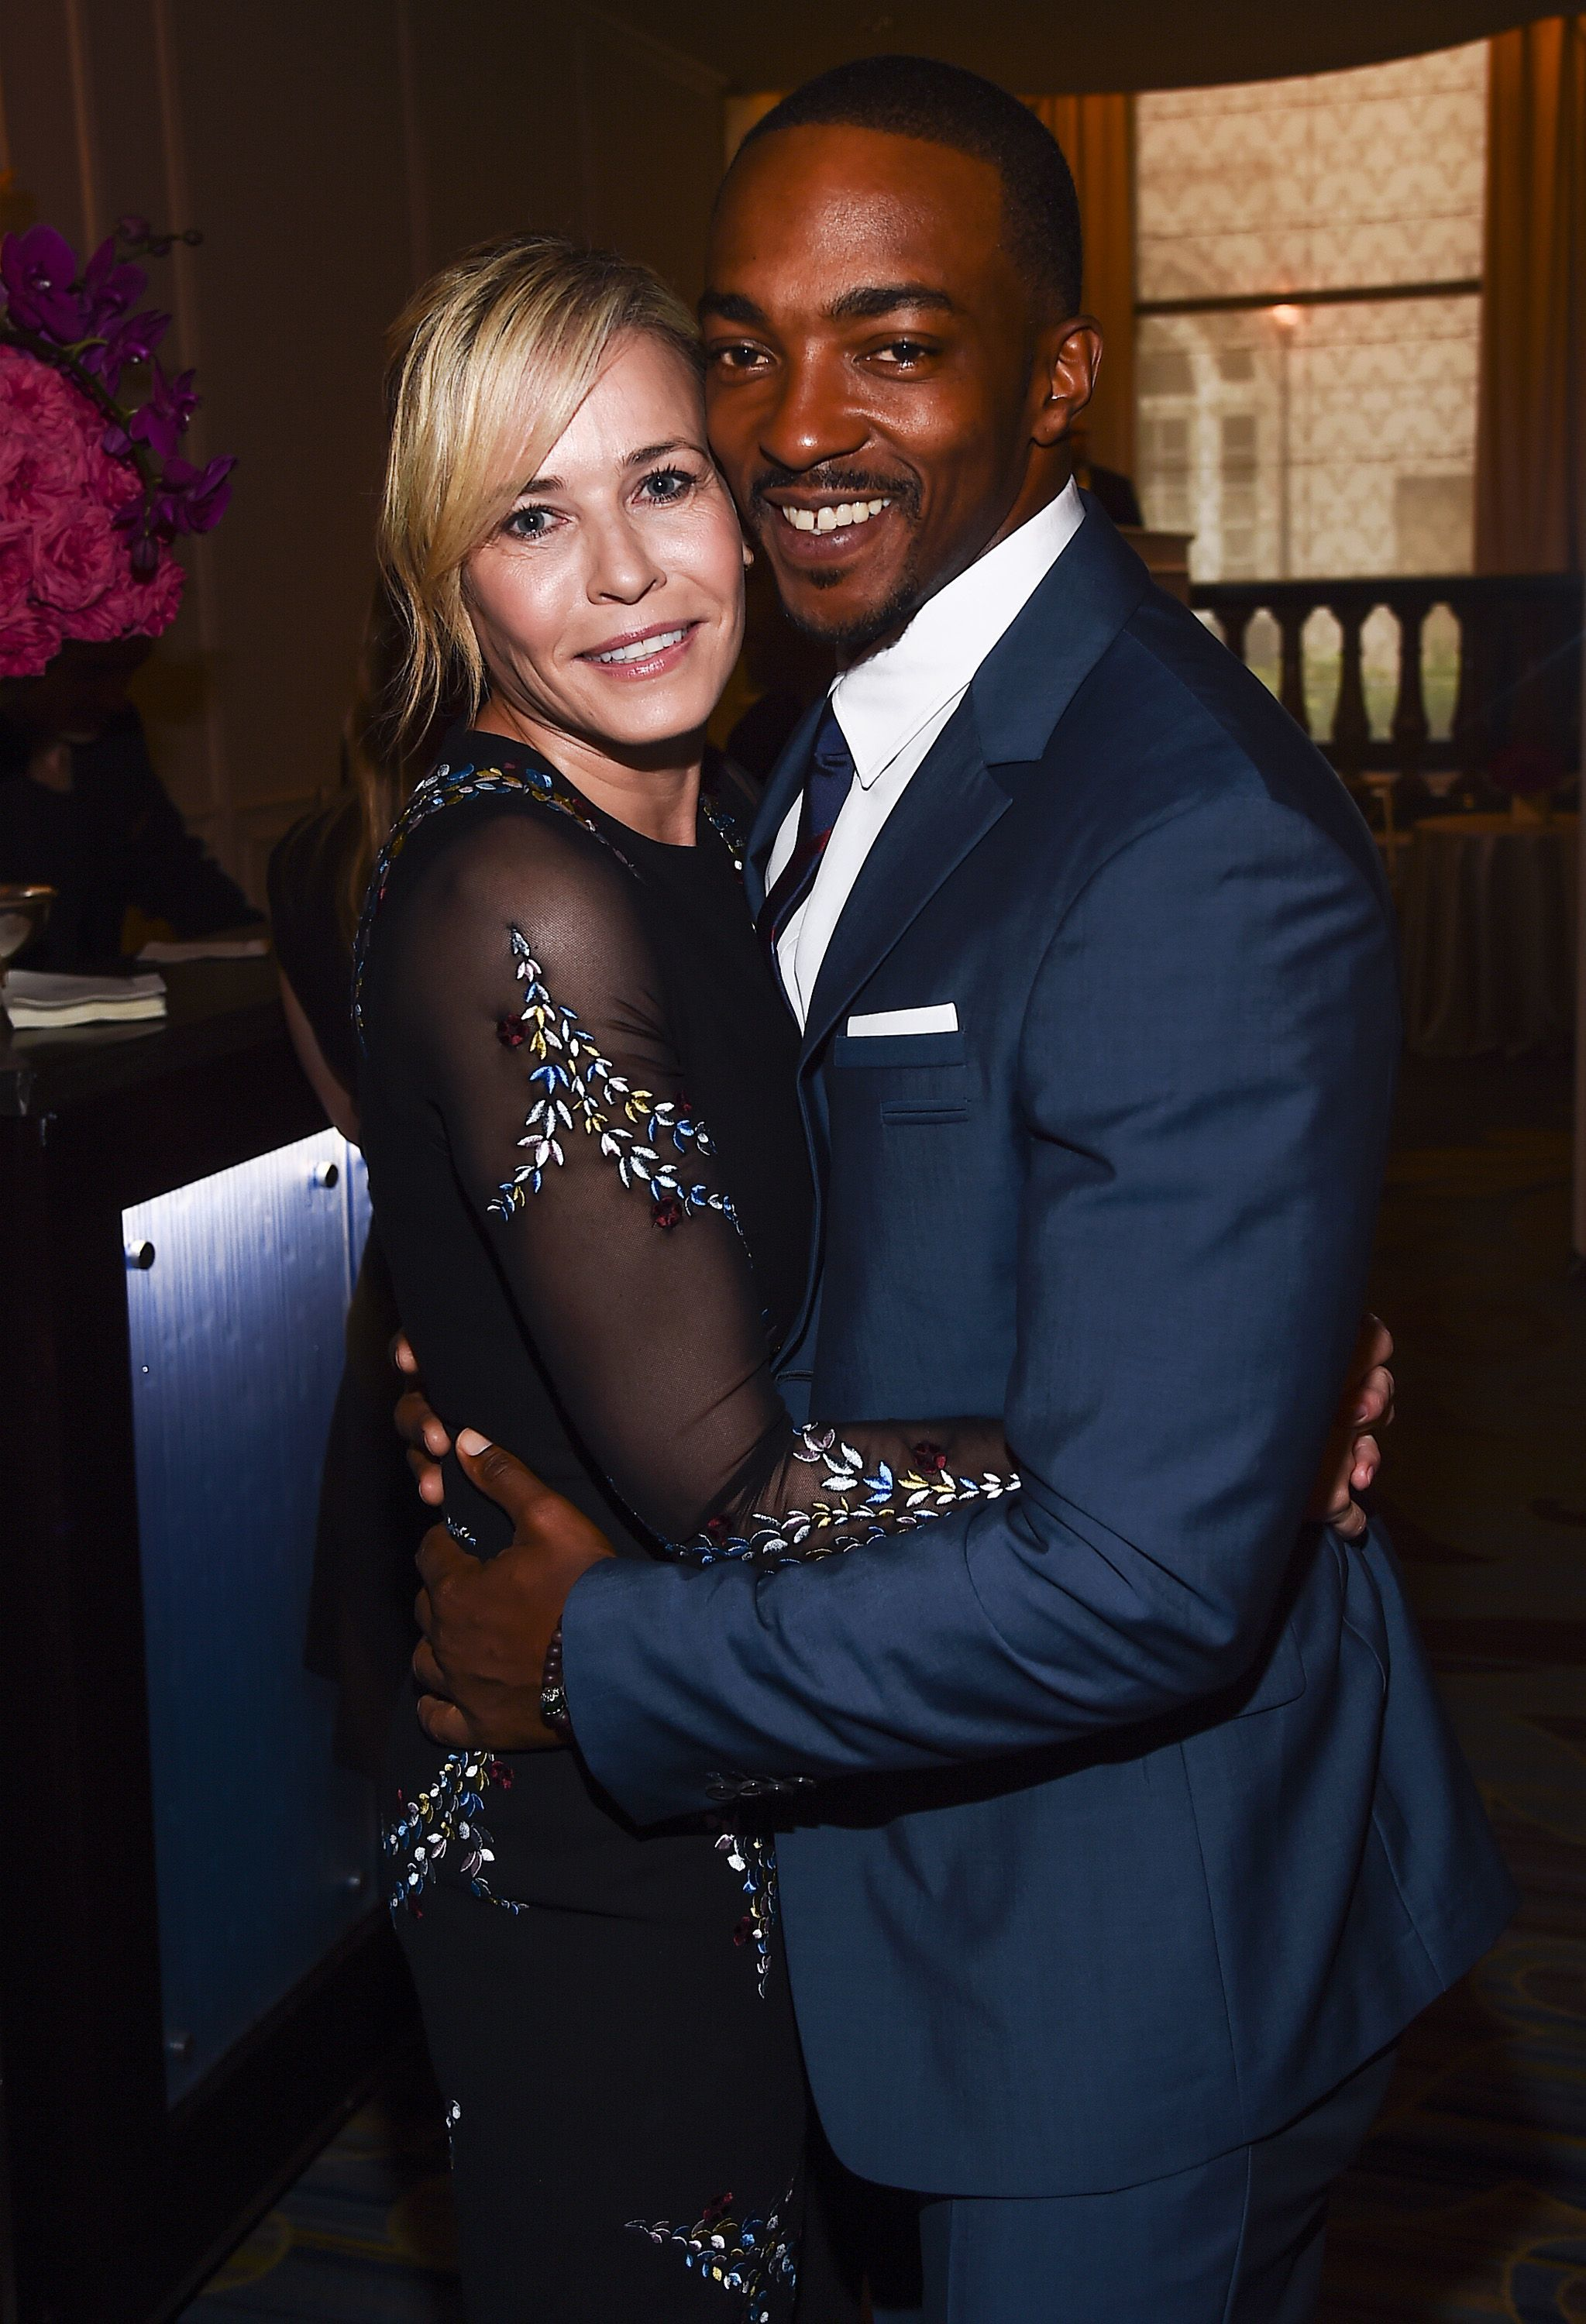 Chelsea Handler hugged Anthony Mackie while attending the HFPA Grants Banquet in Los Angeles on Aug. 2, 2017.